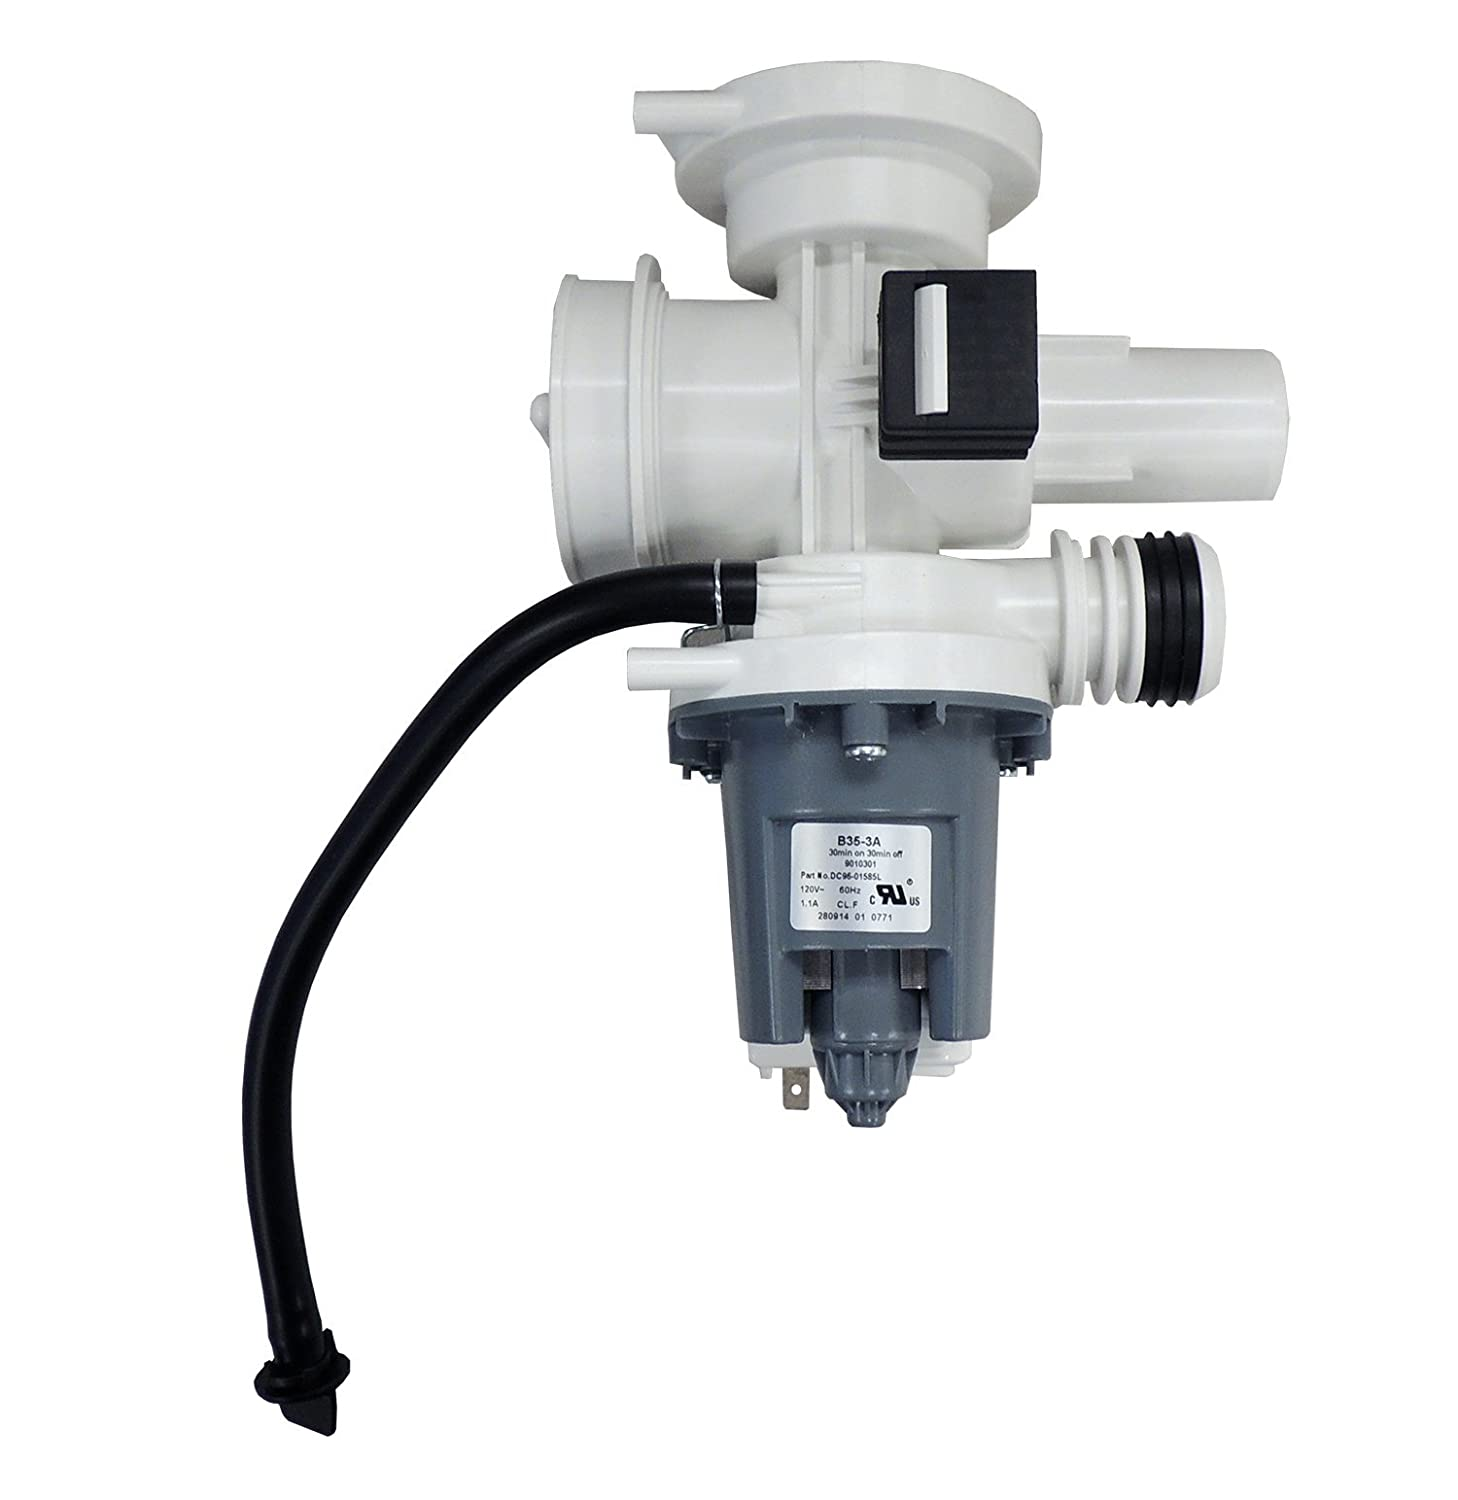 Supco LP1585L Washer Drain Pump Assembly Replaces Samsung DC96-01585L